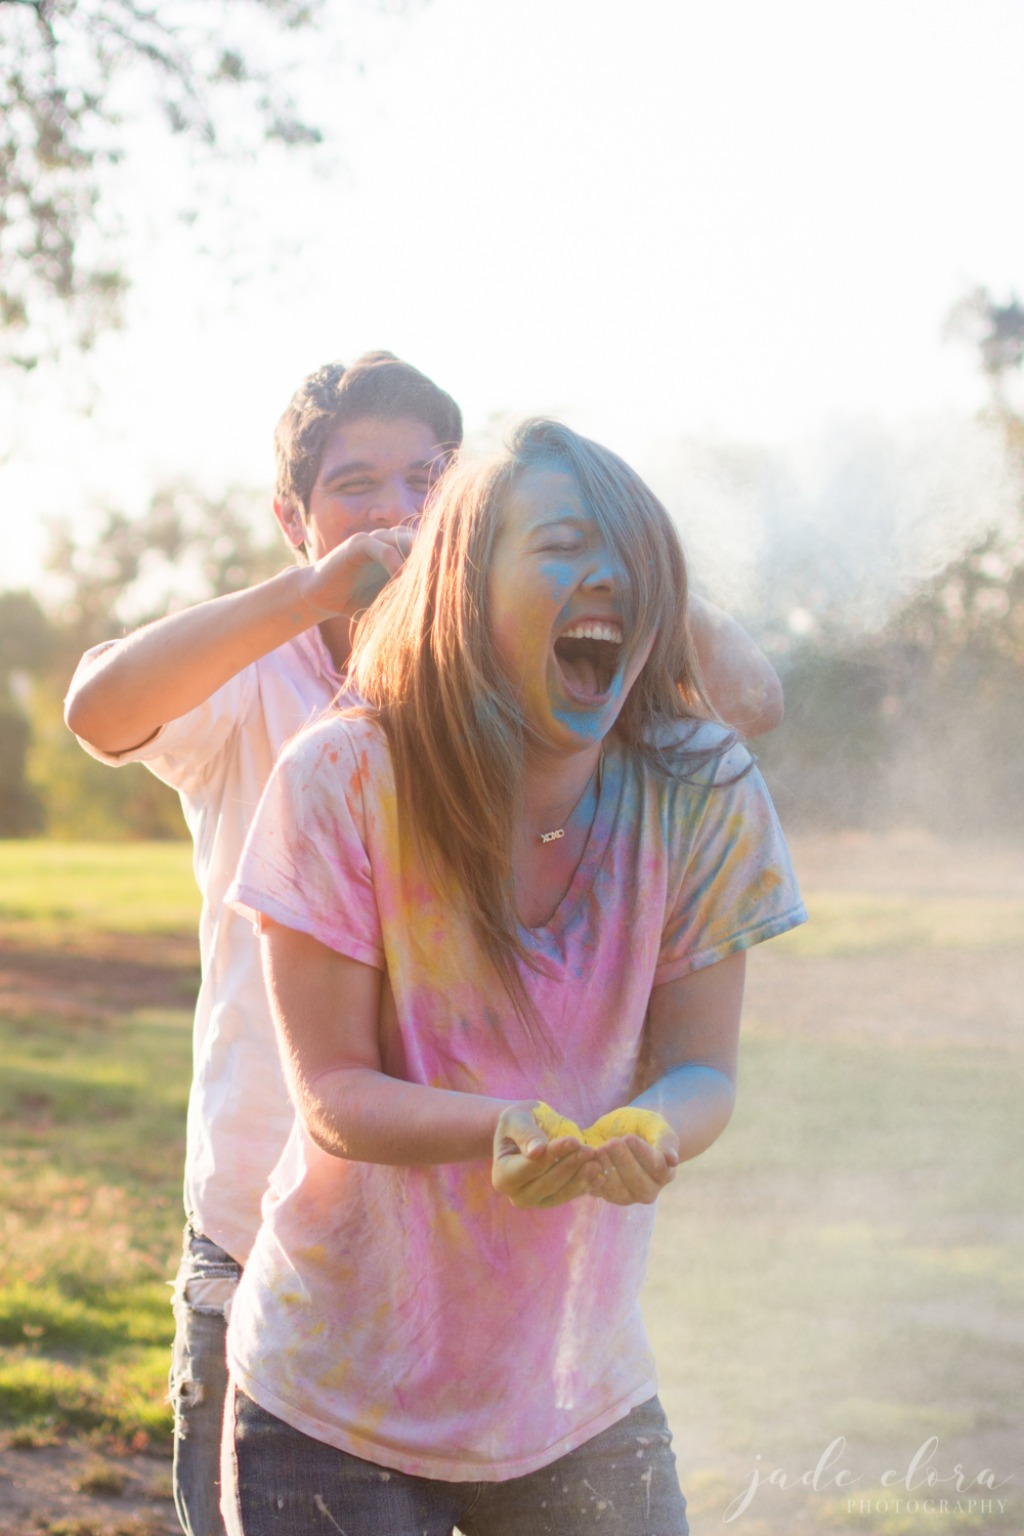 This playful couple gets super-colorful with an engagement photo shoot full of bright colored powders and a whole lot of fun.